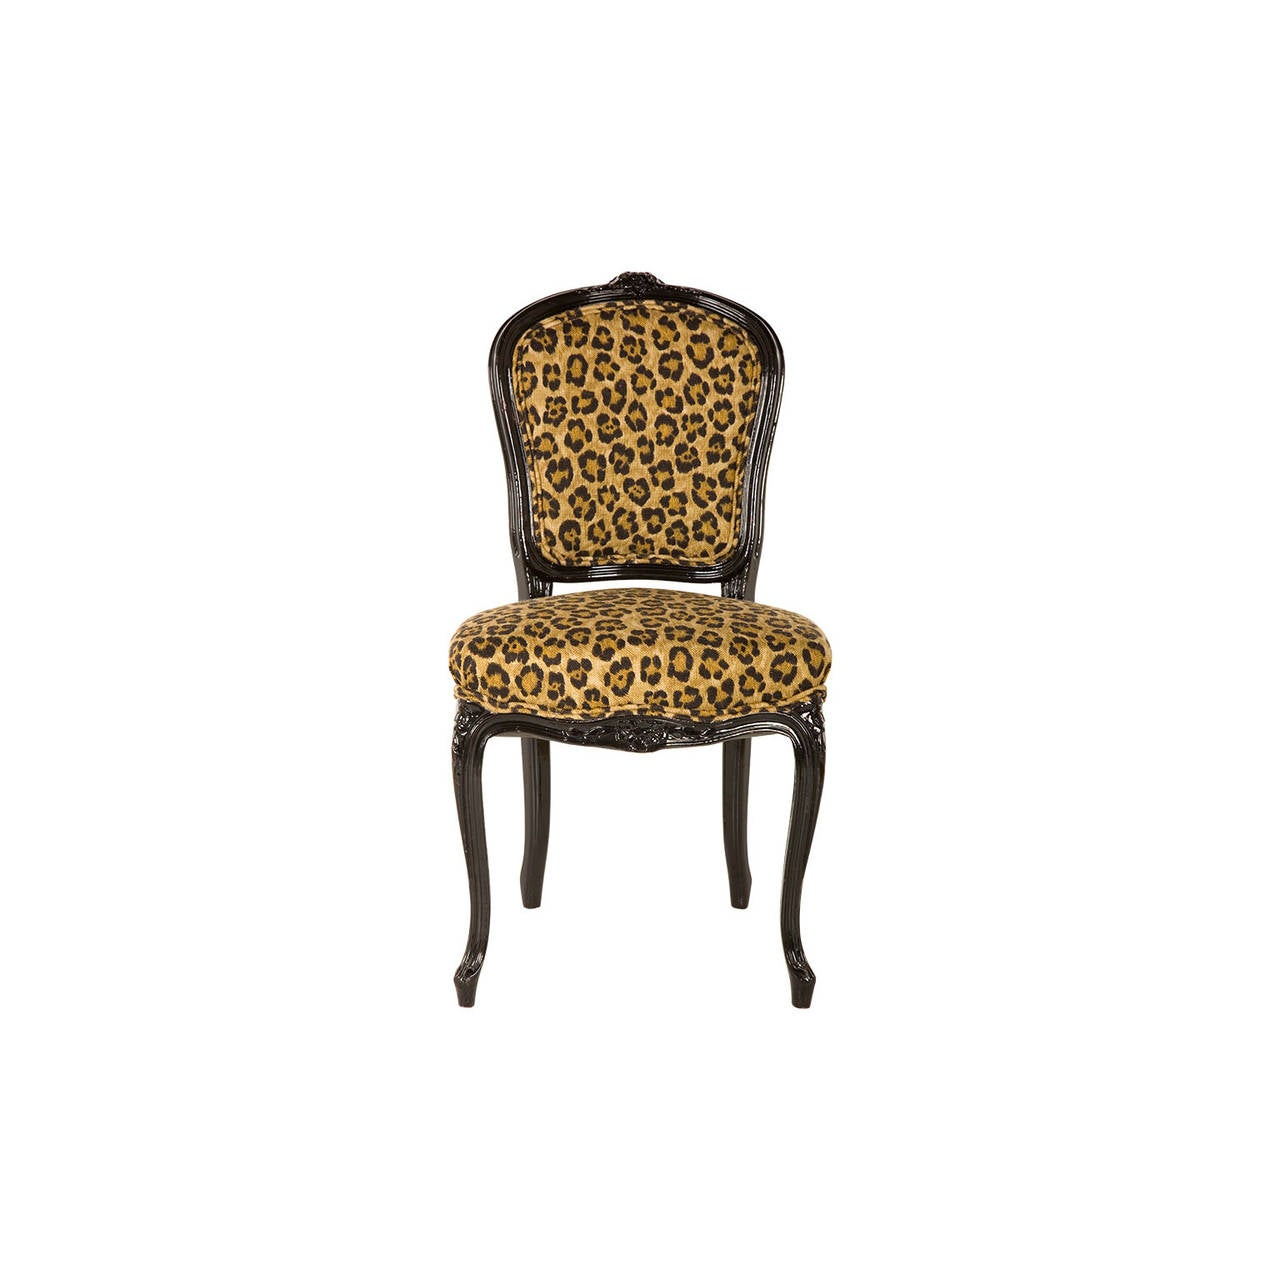 retro cafe dining chairs makeup chair for sale vintage leopard print at 1stdibs